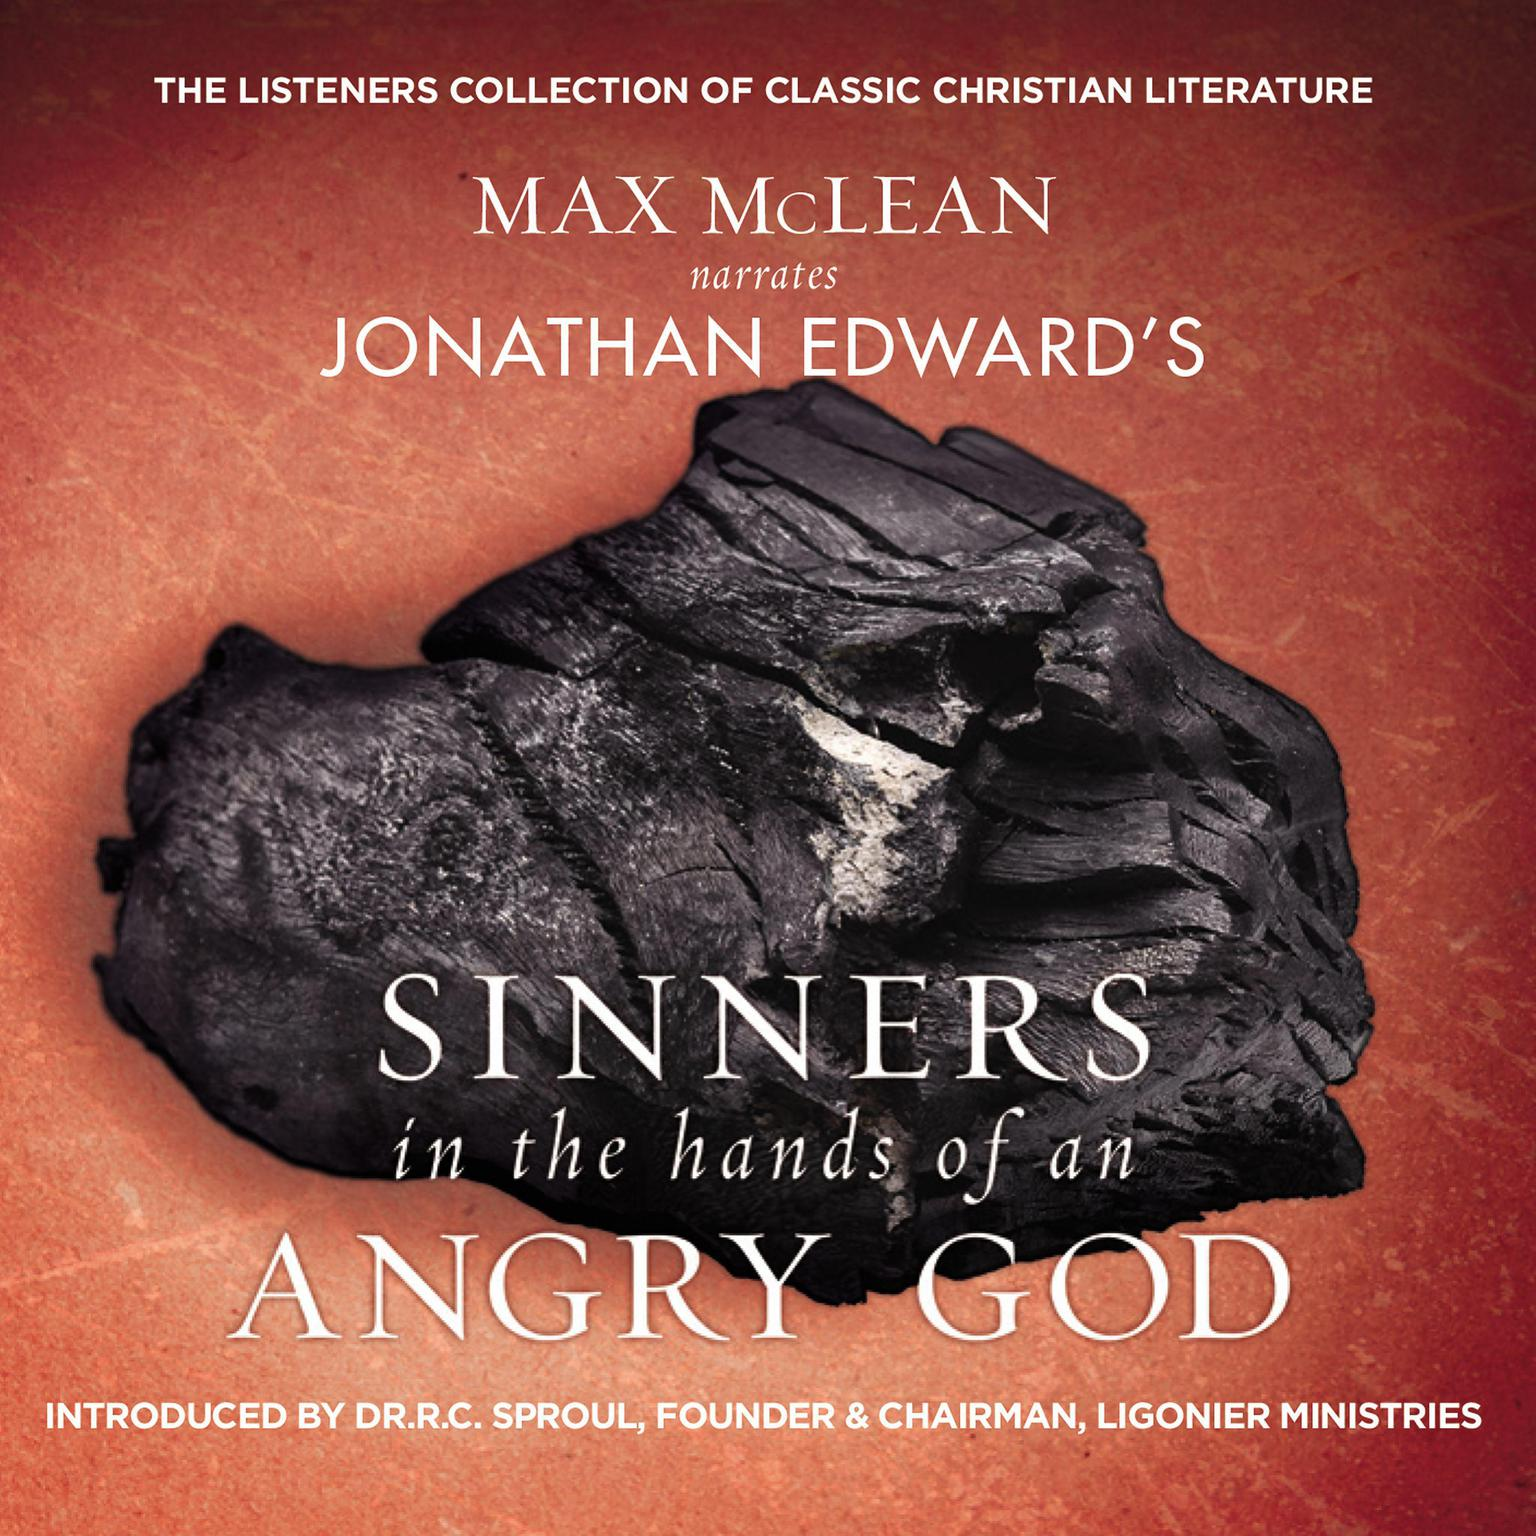 summary of narrative jonathan edwards Complete summary of jonathan edwards' sinners in the hands of an angry god enotes plot summaries cover all the significant action of sinners in the hands of an angry.